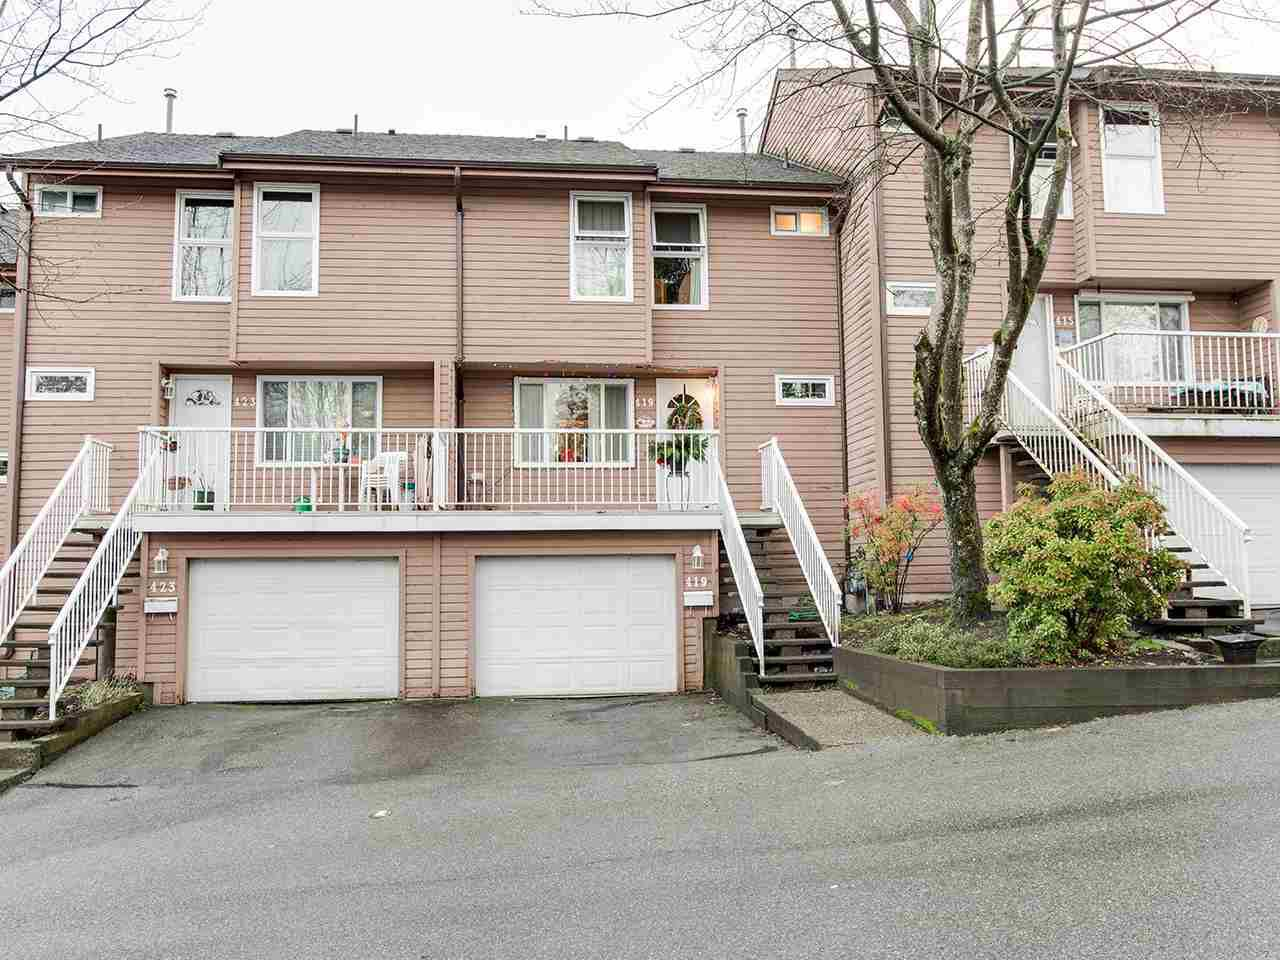 Main Photo: 419 LEHMAN Place in Port Moody: North Shore Pt Moody Townhouse for sale : MLS®# R2327302